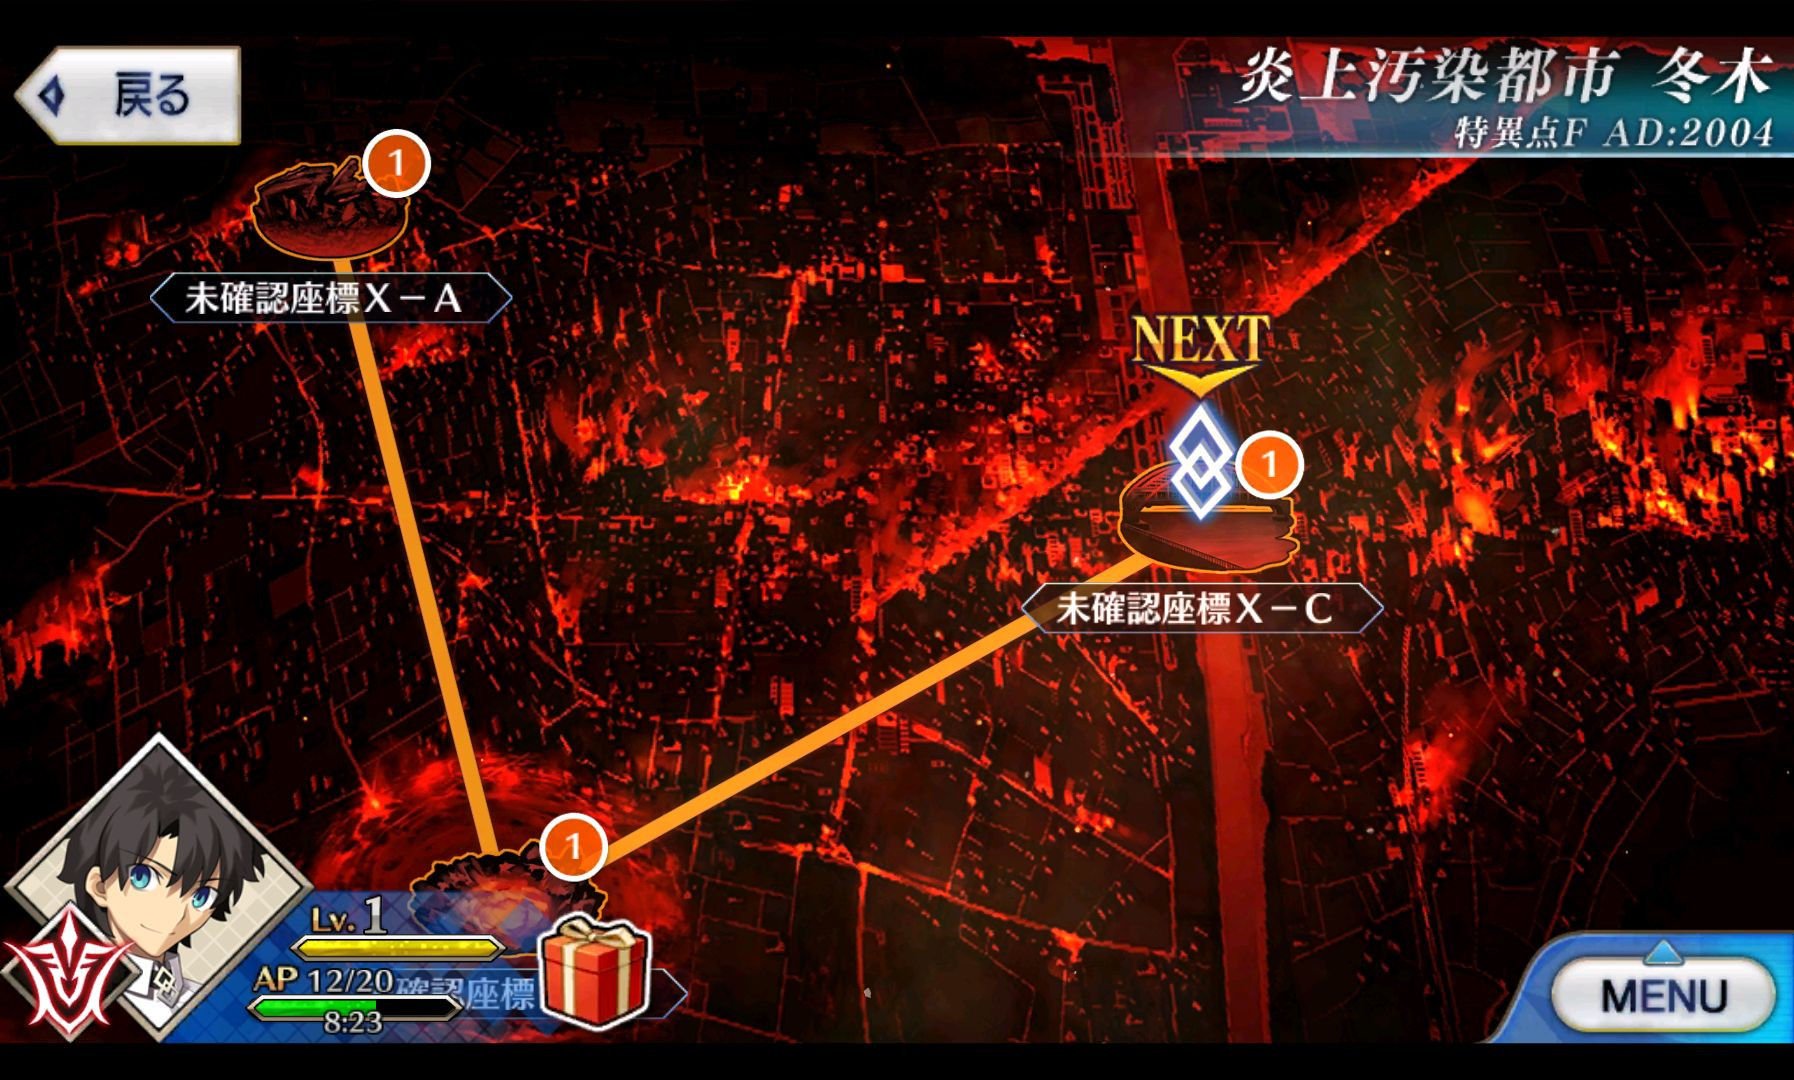 androidアプリ Fate/Grand Order攻略スクリーンショット1